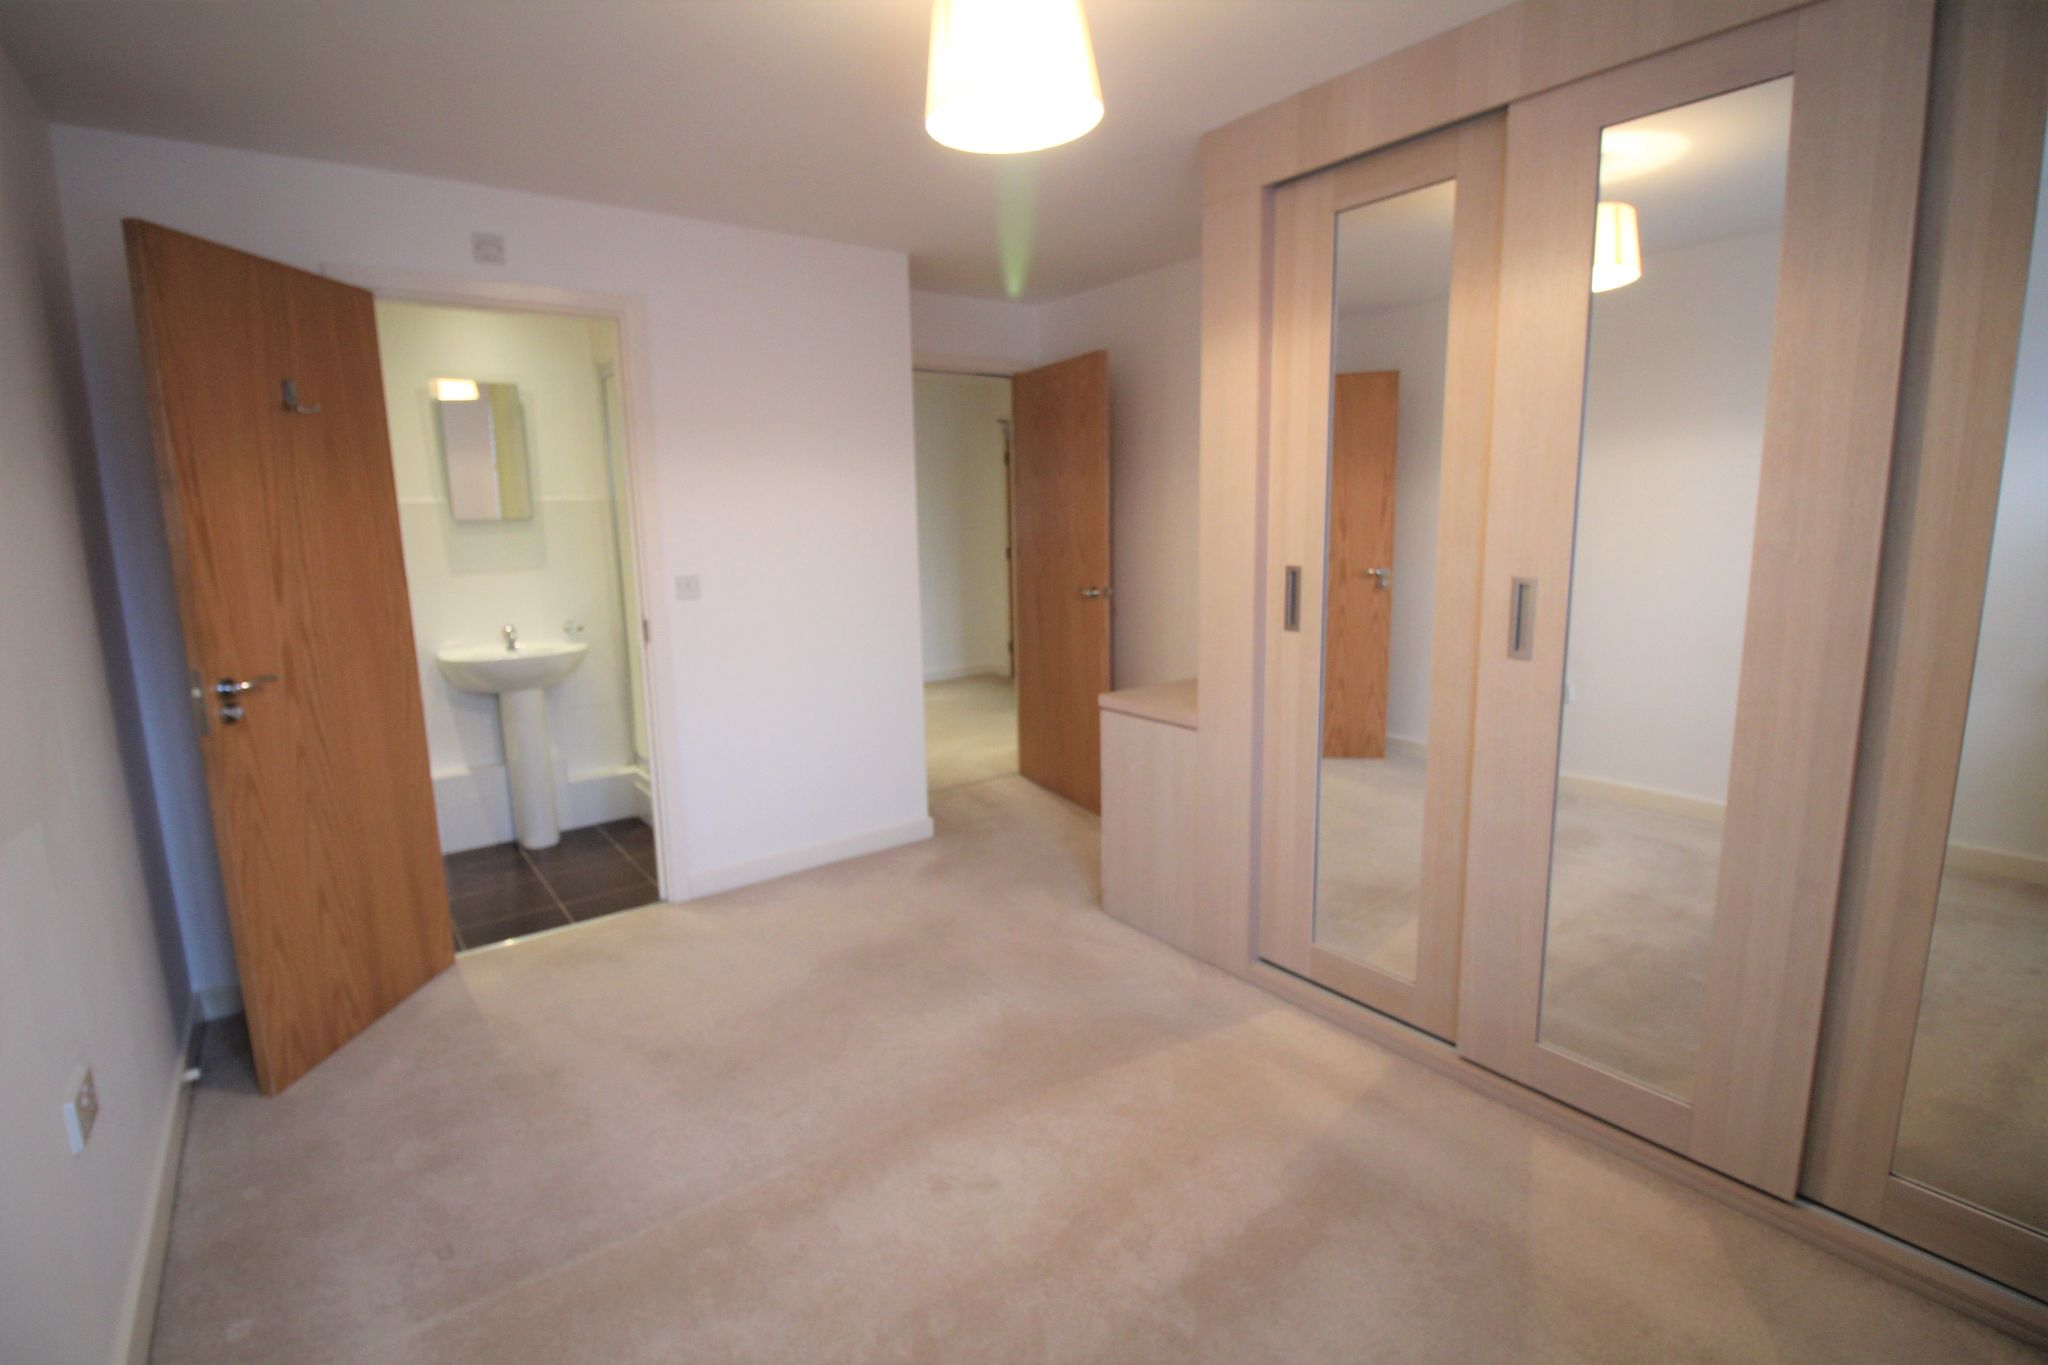 2 bedroom apartment flat/apartment For Sale in Solihull - Photograph 10.